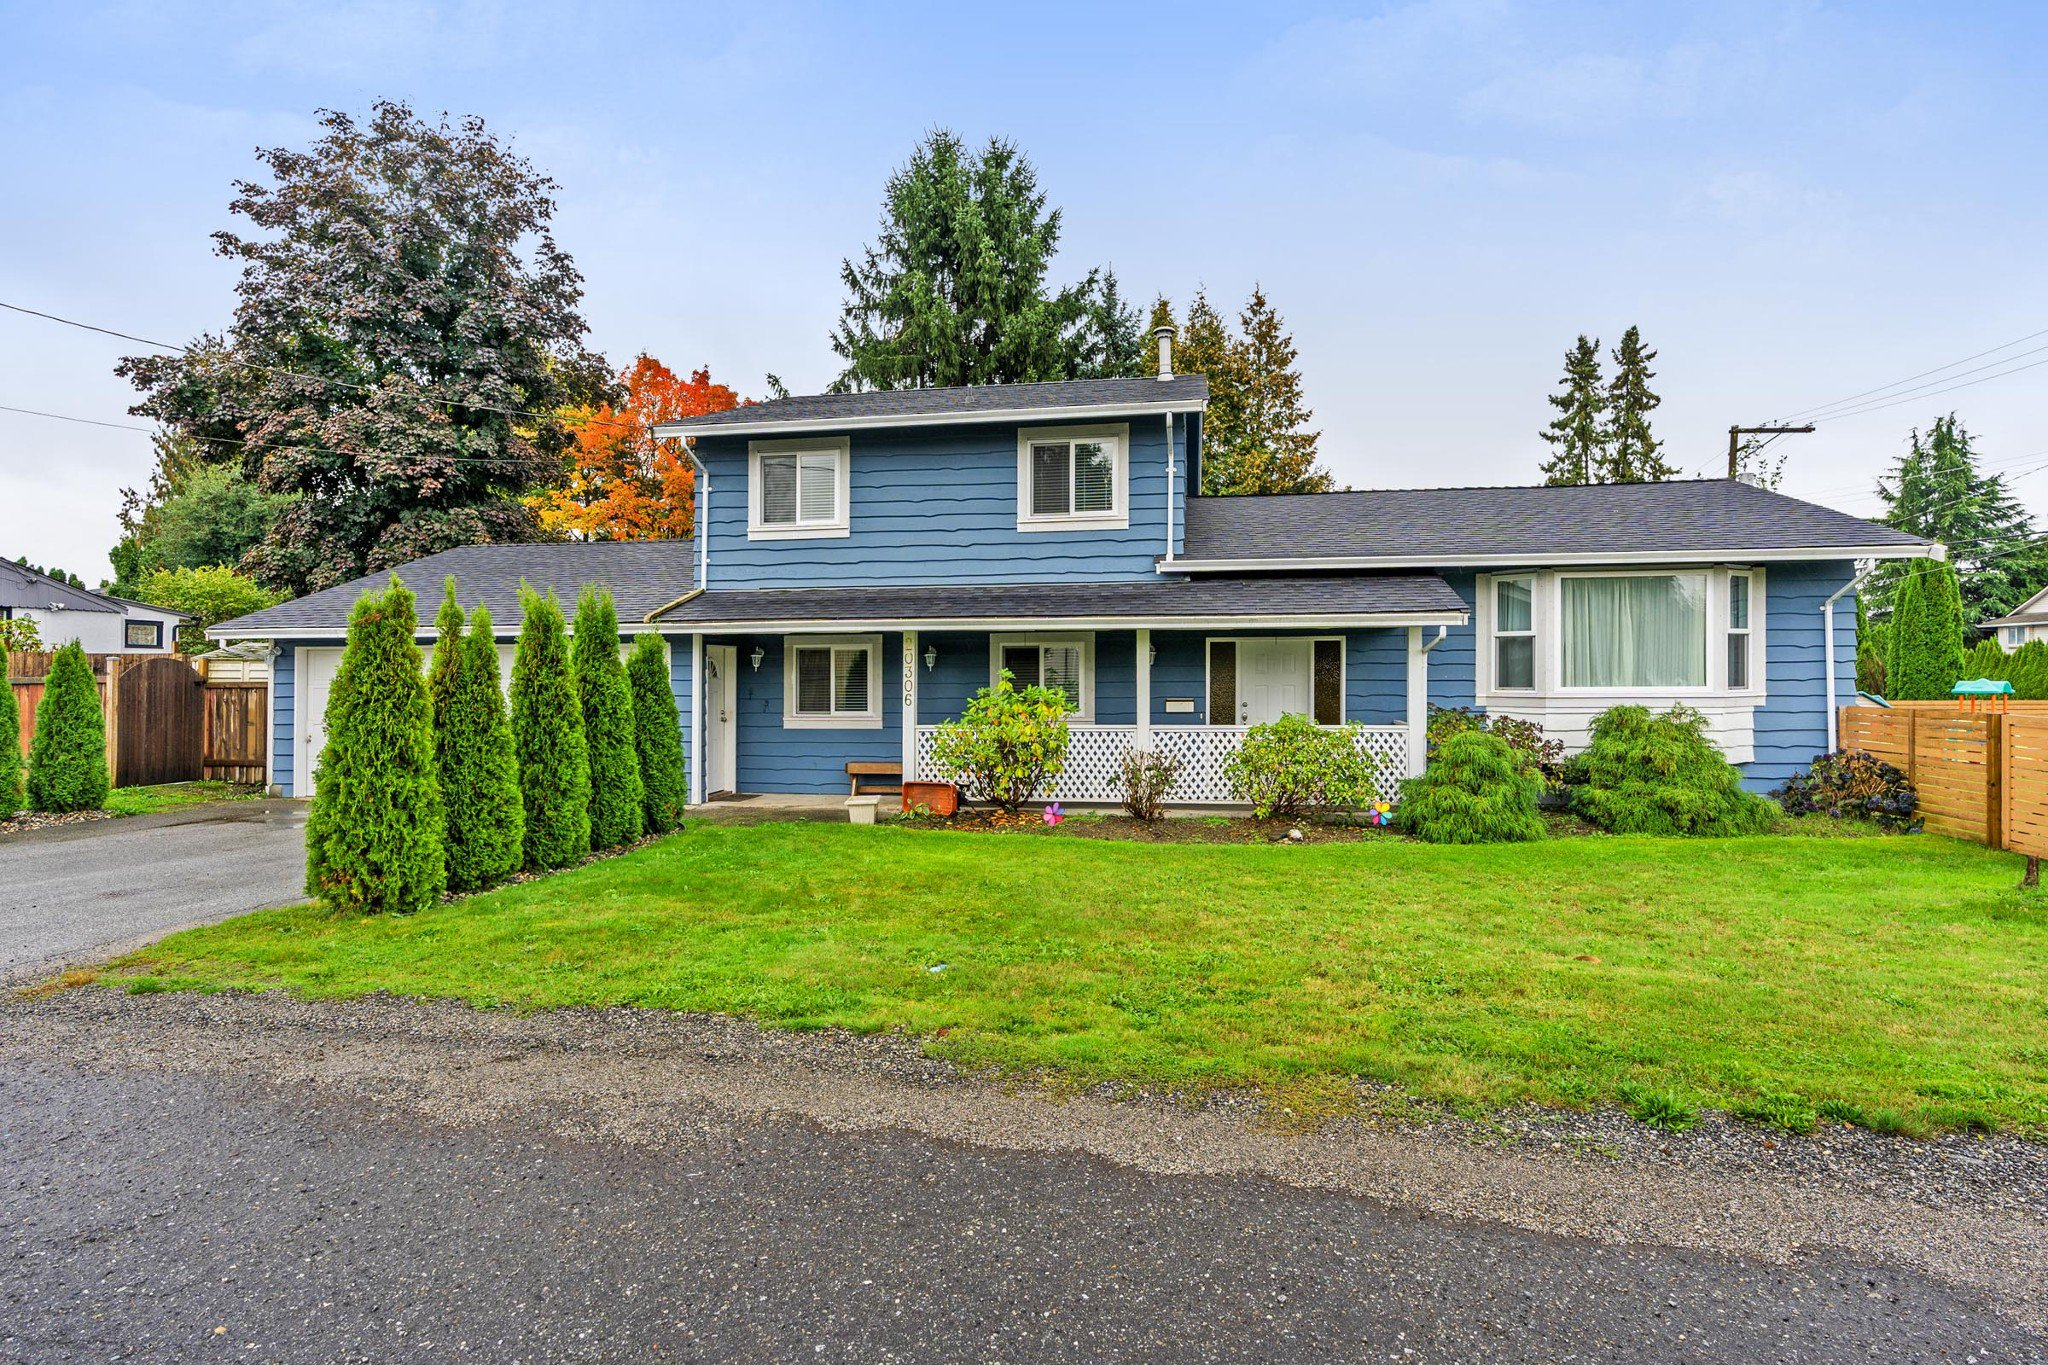 Main Photo: 20306 116 Avenue in Maple Ridge: Southwest Maple Ridge House for sale : MLS®# R2311662